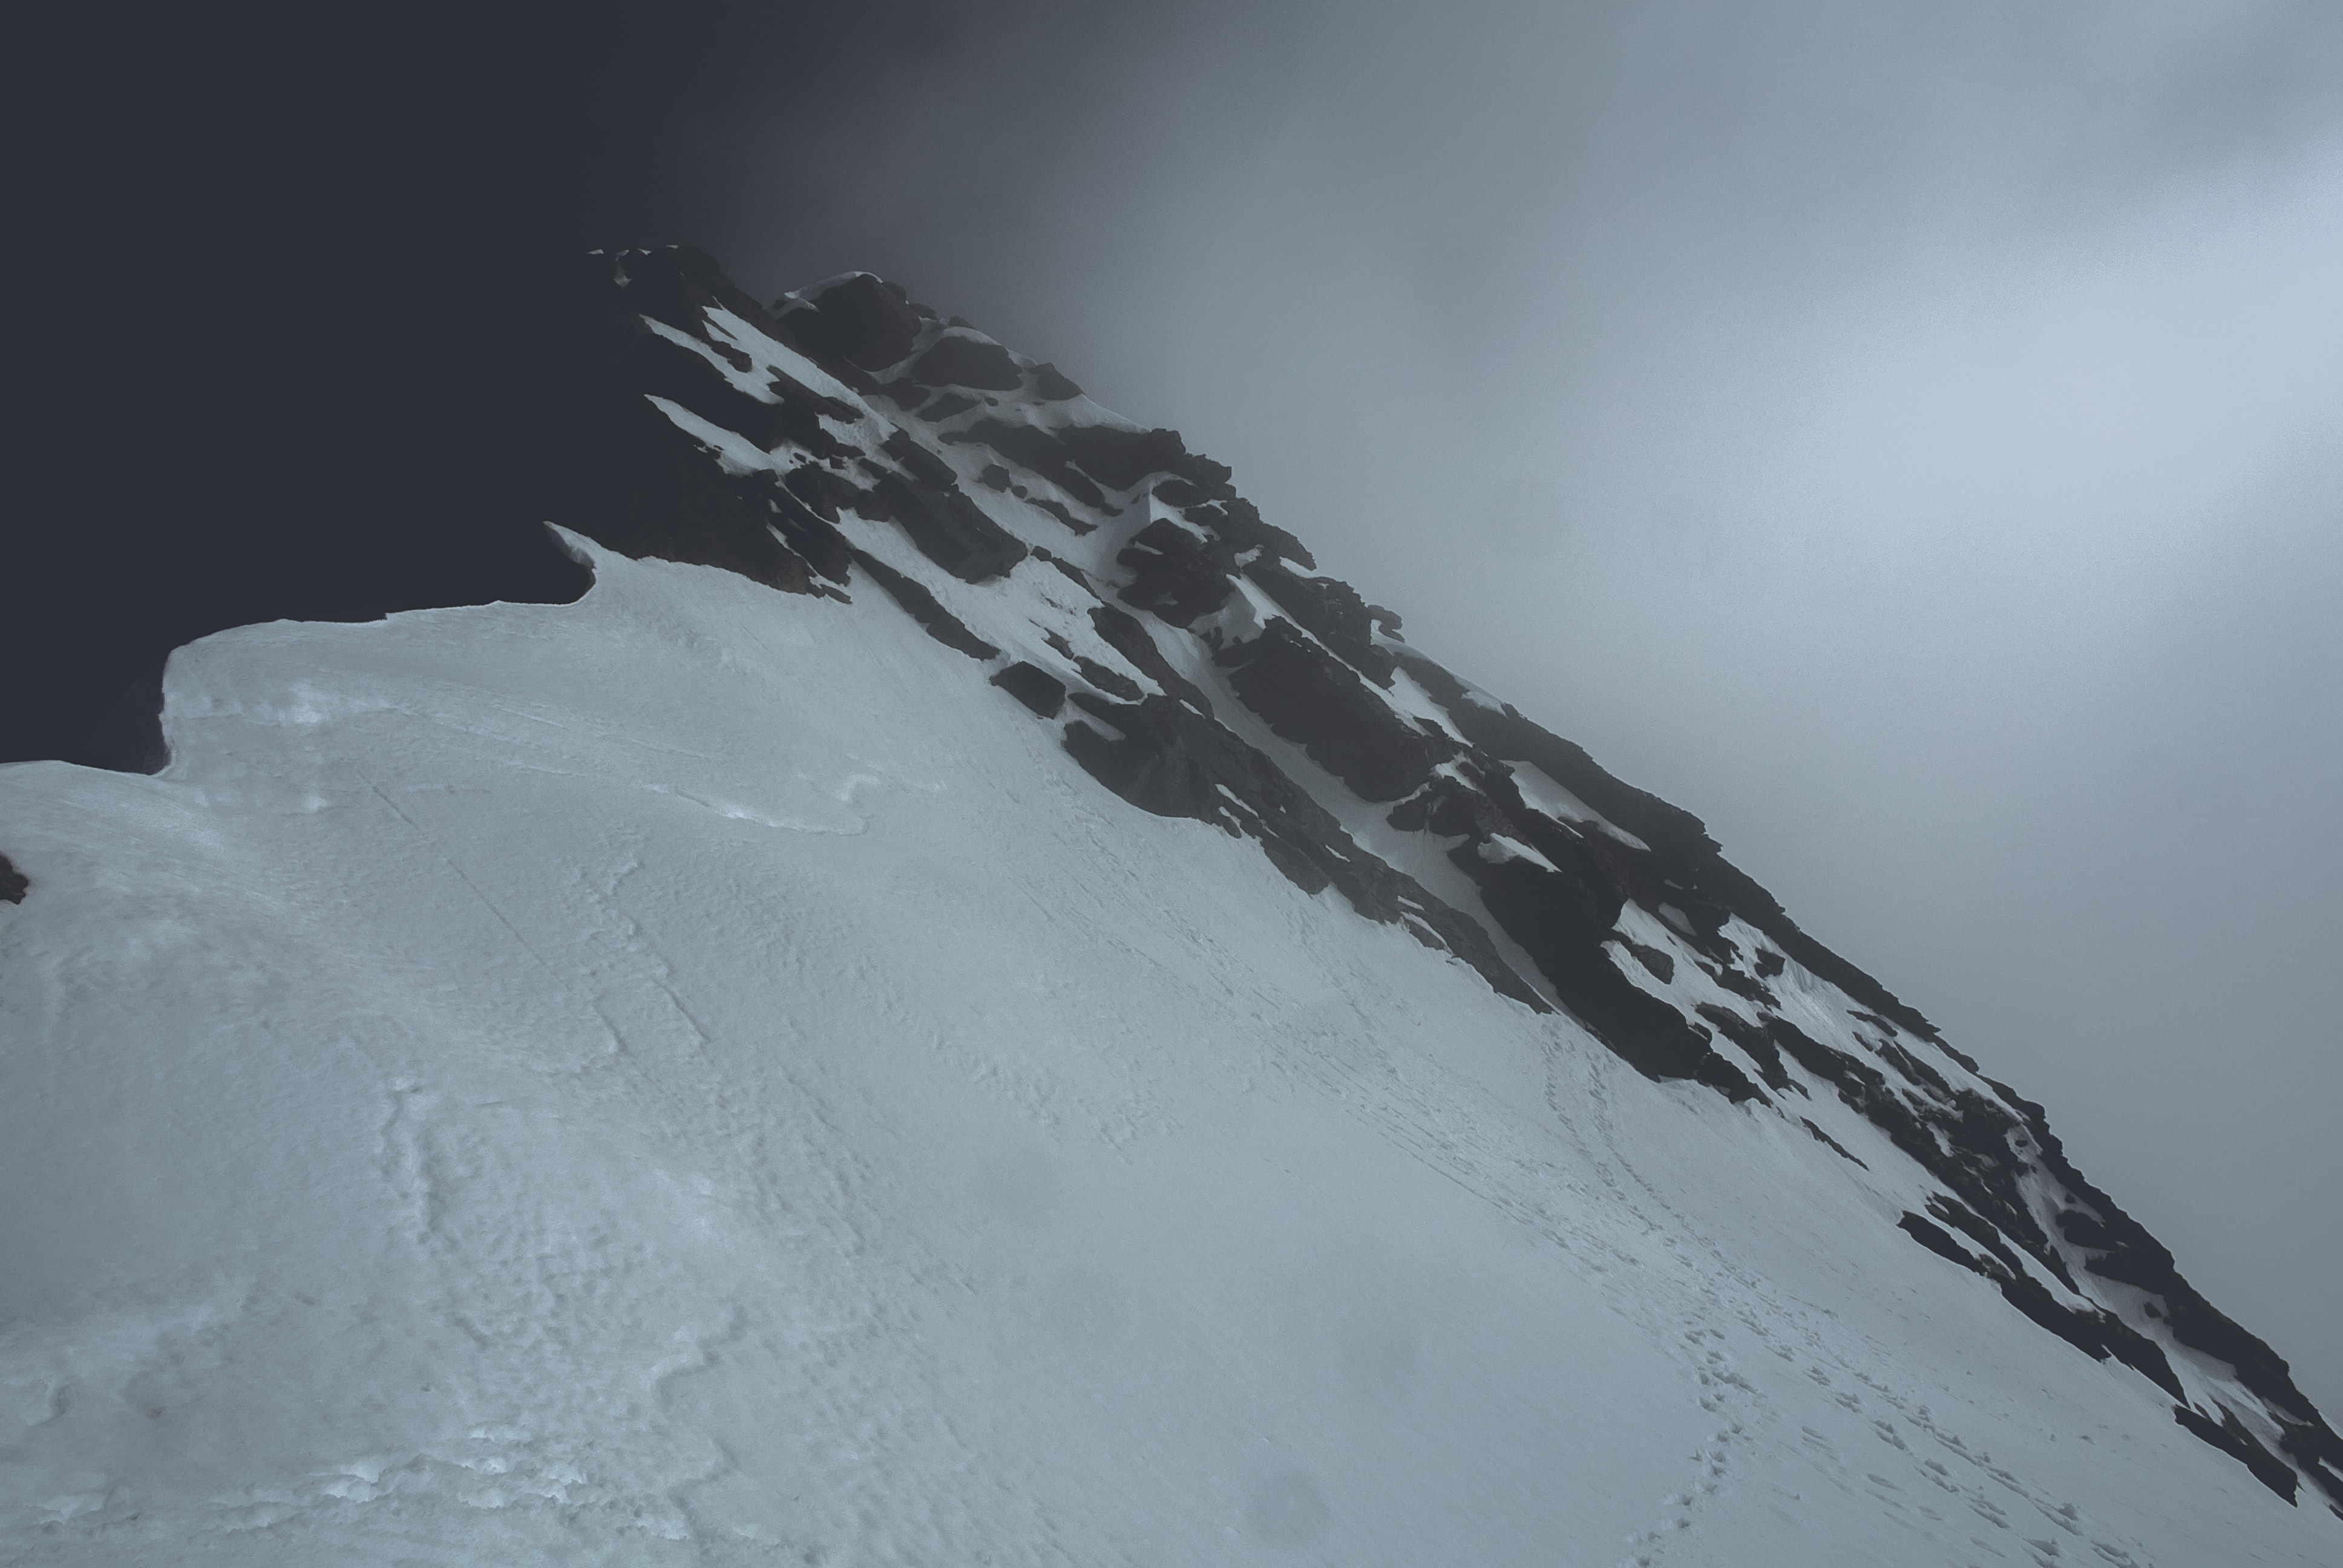 snow covered mountain under white clouds at daytime